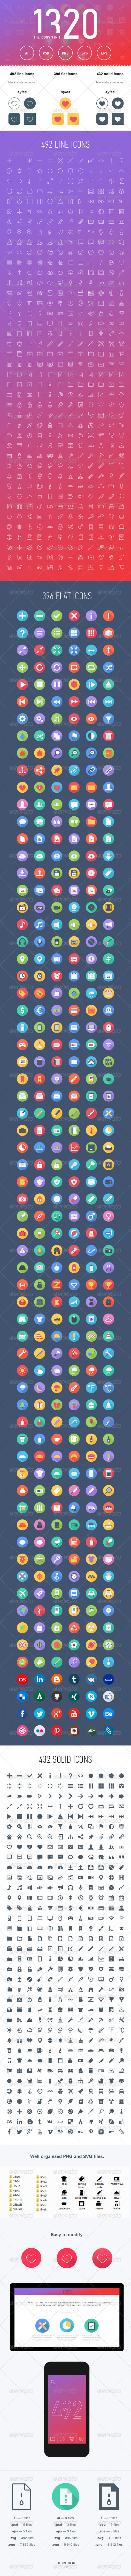 GraphicRiver The Icons 3in1 1320 7730764